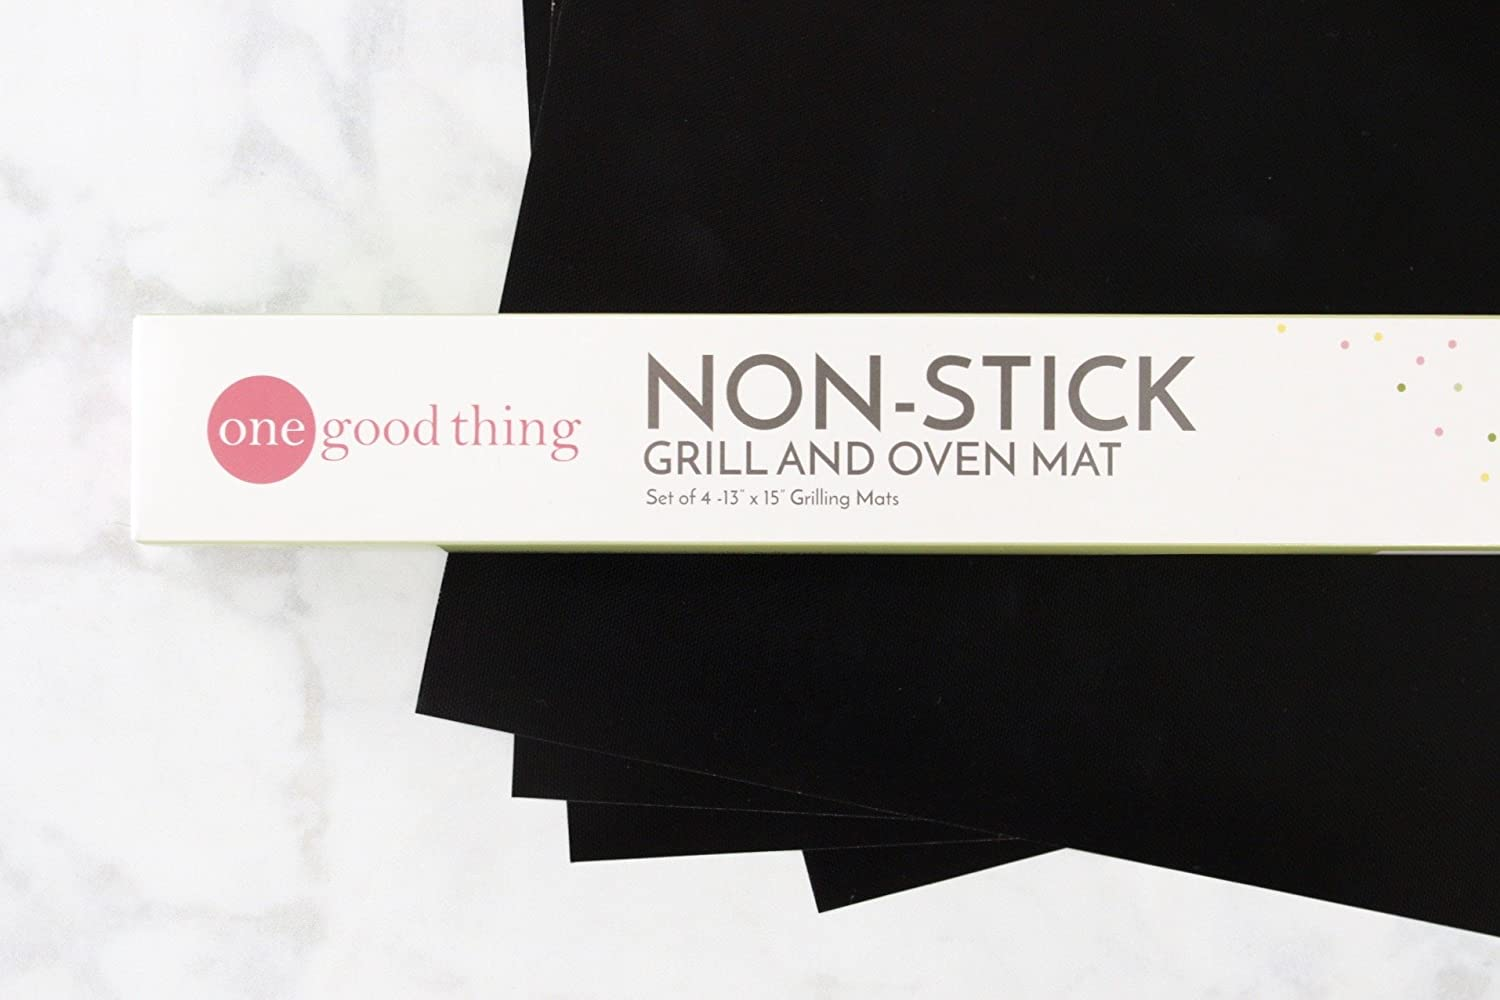 Non-Stick Grill and Oven Mats Set of 4 13 x 15 inch Reusable FDA Approved, PFOA Free BBQ and Baking Mats by One Good Thing for Ovens, Stoves and Gas, Charcoal, Electric Grills